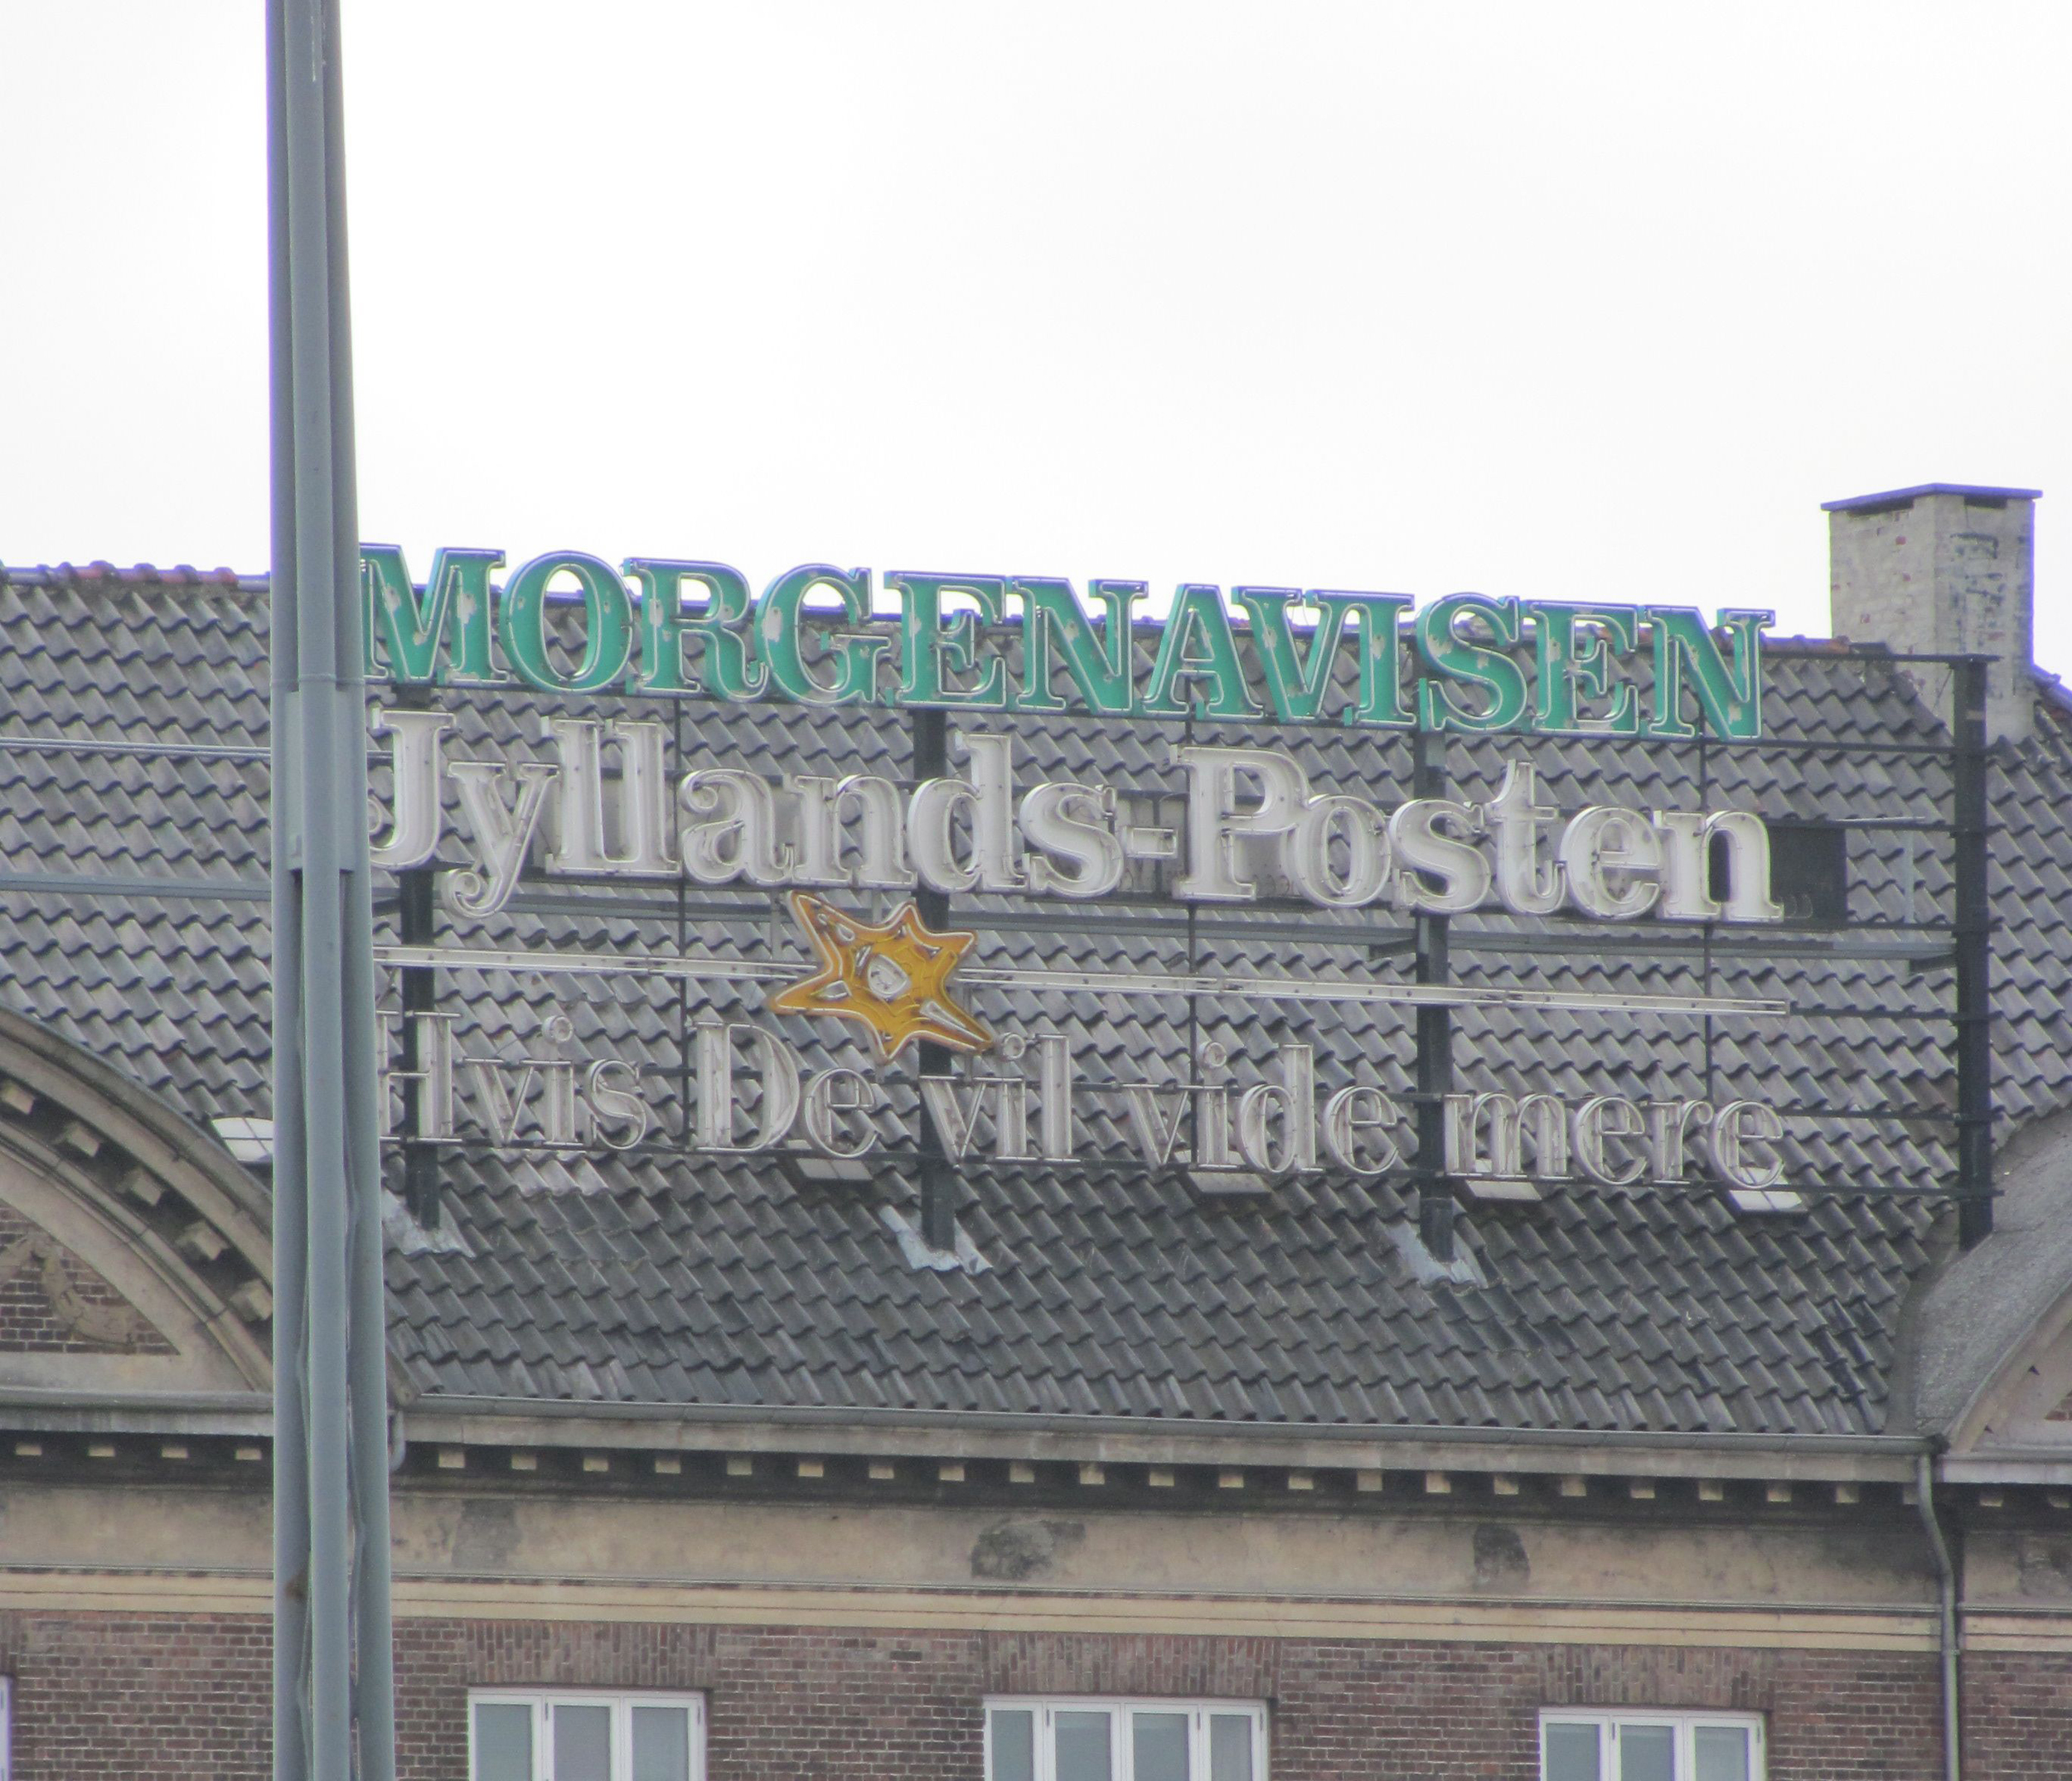 Neon signage (no longer illuminated, probably for security reasons) identifying the offices of Jyllands-Posten in Copenhagen. I shot this photograph in 2011.